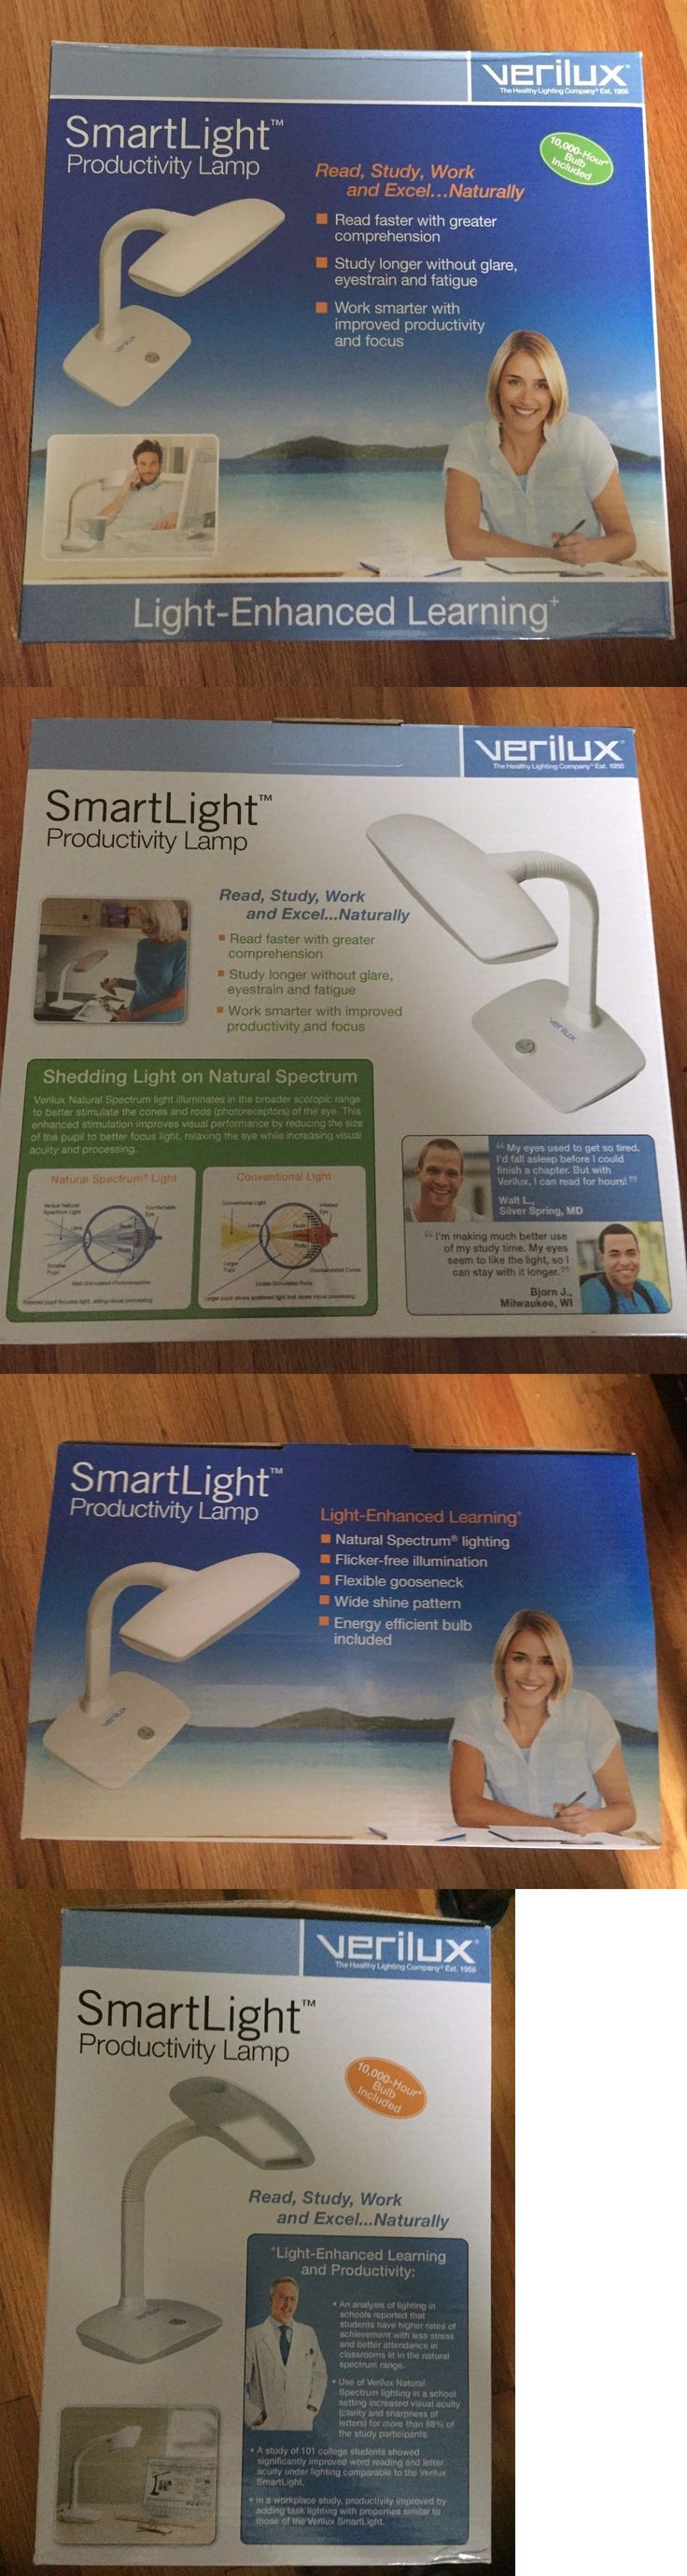 Light Therapy Devices: New Verilux Smart Light Productivity Lamp, White  Vd12 -> BUY